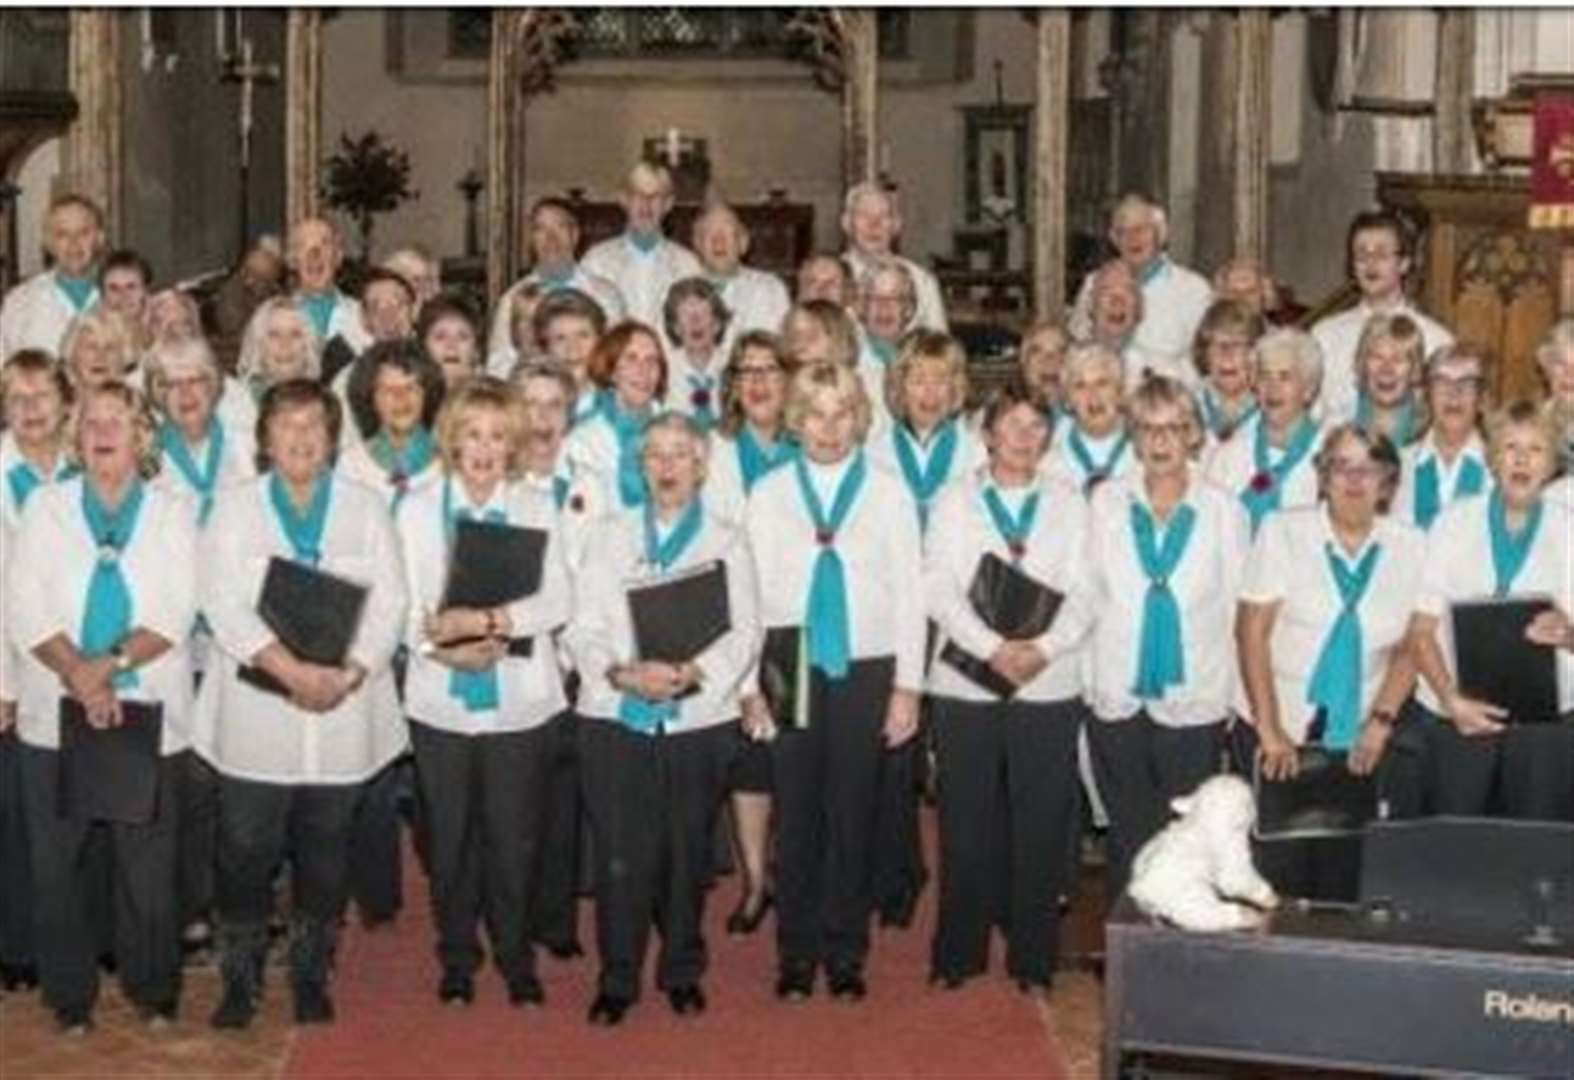 Hunstanton community choir plays concert at St Edmund's